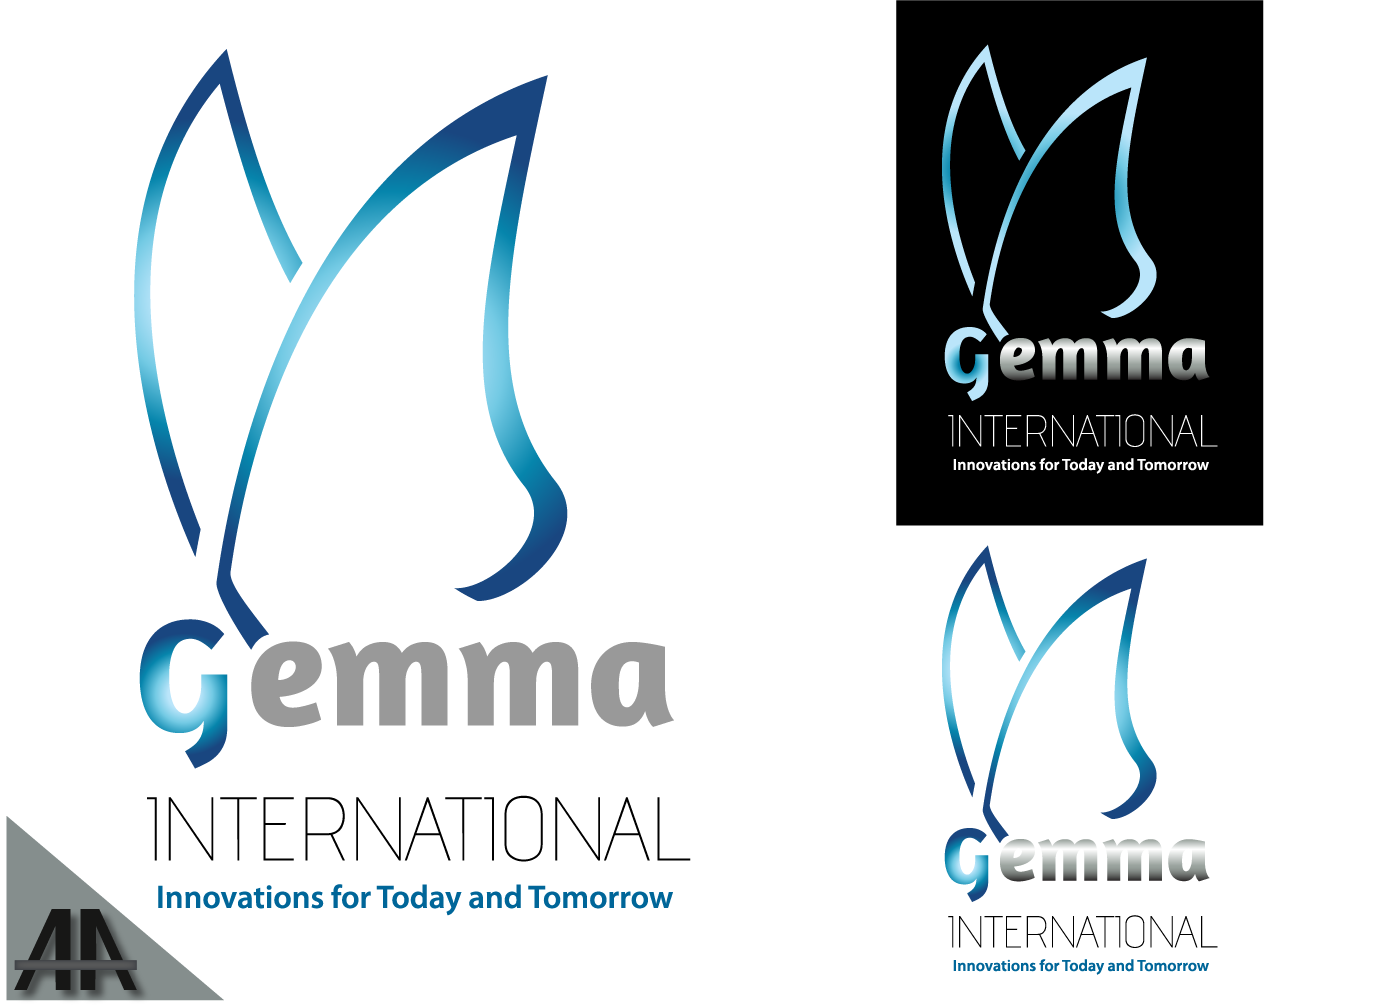 Logo Design by Thanasis Athanasopoulos - Entry No. 76 in the Logo Design Contest Artistic Logo Design for Gemma International.